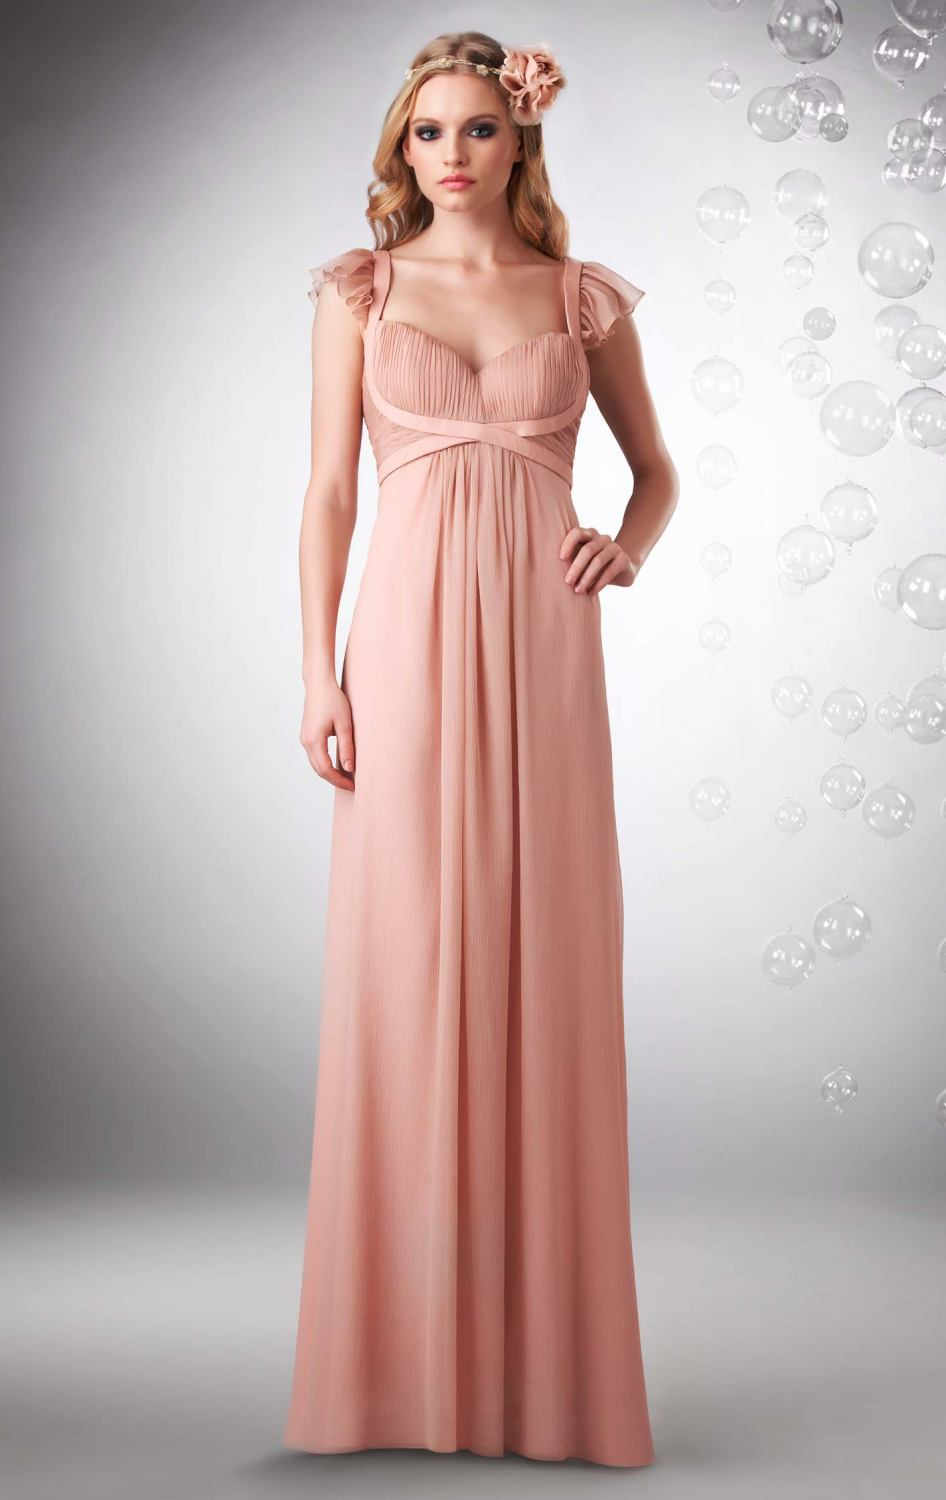 Elegant Latest Design Pink Maternity Bridesmaid Dress Patterns For Pregnant Women With Sleeves In Dresses From Weddings Events